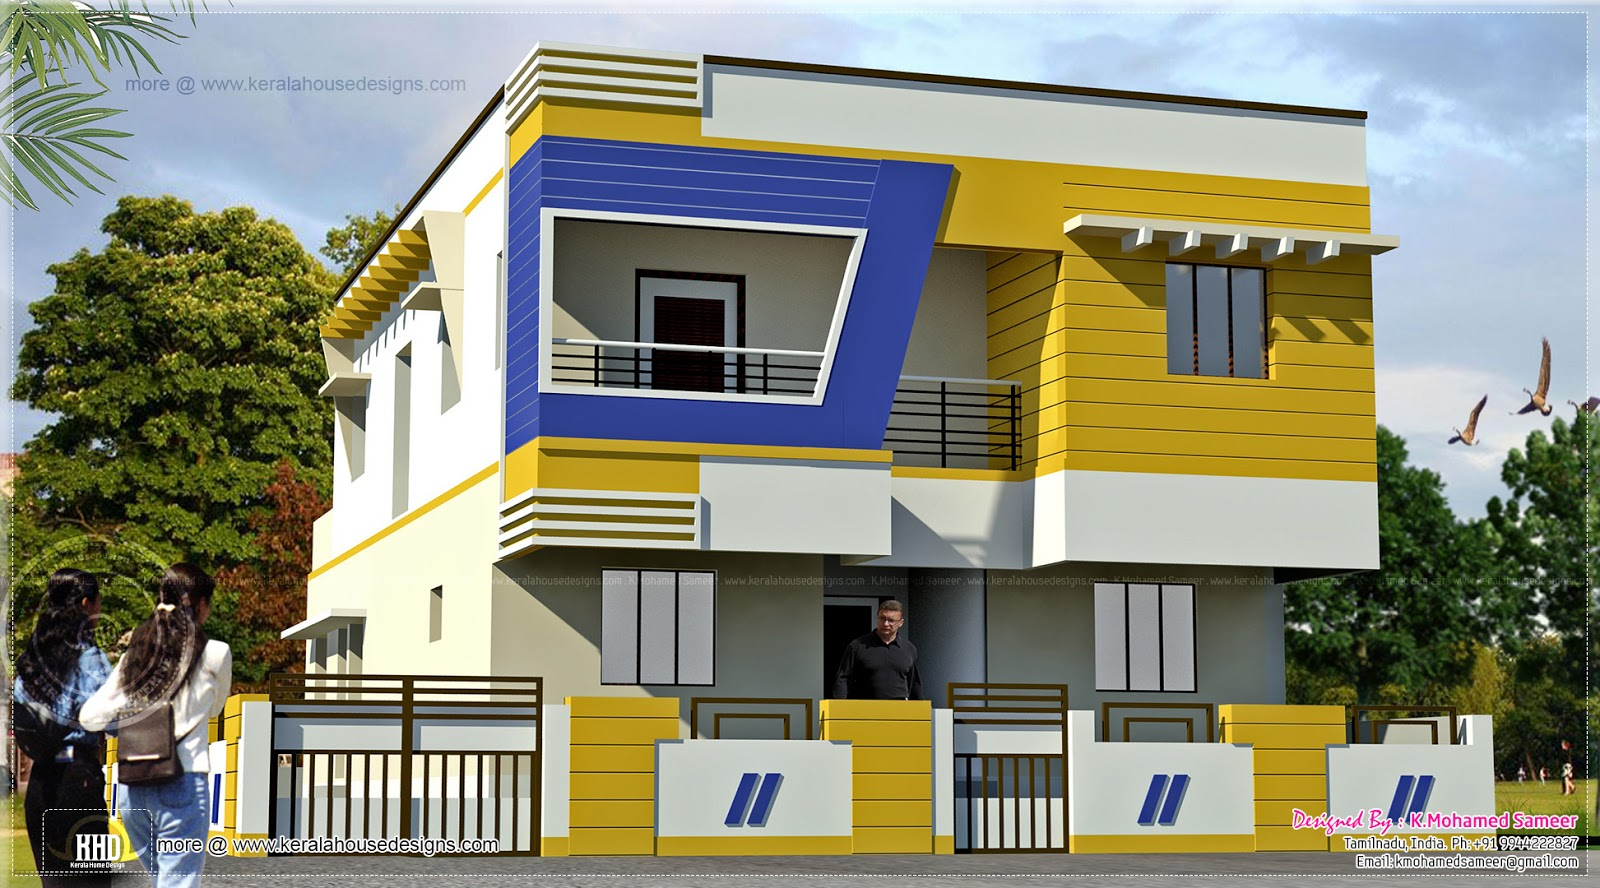 modern tamilnadu style house design kerala home - Simple Exterior House Designs In Kerala